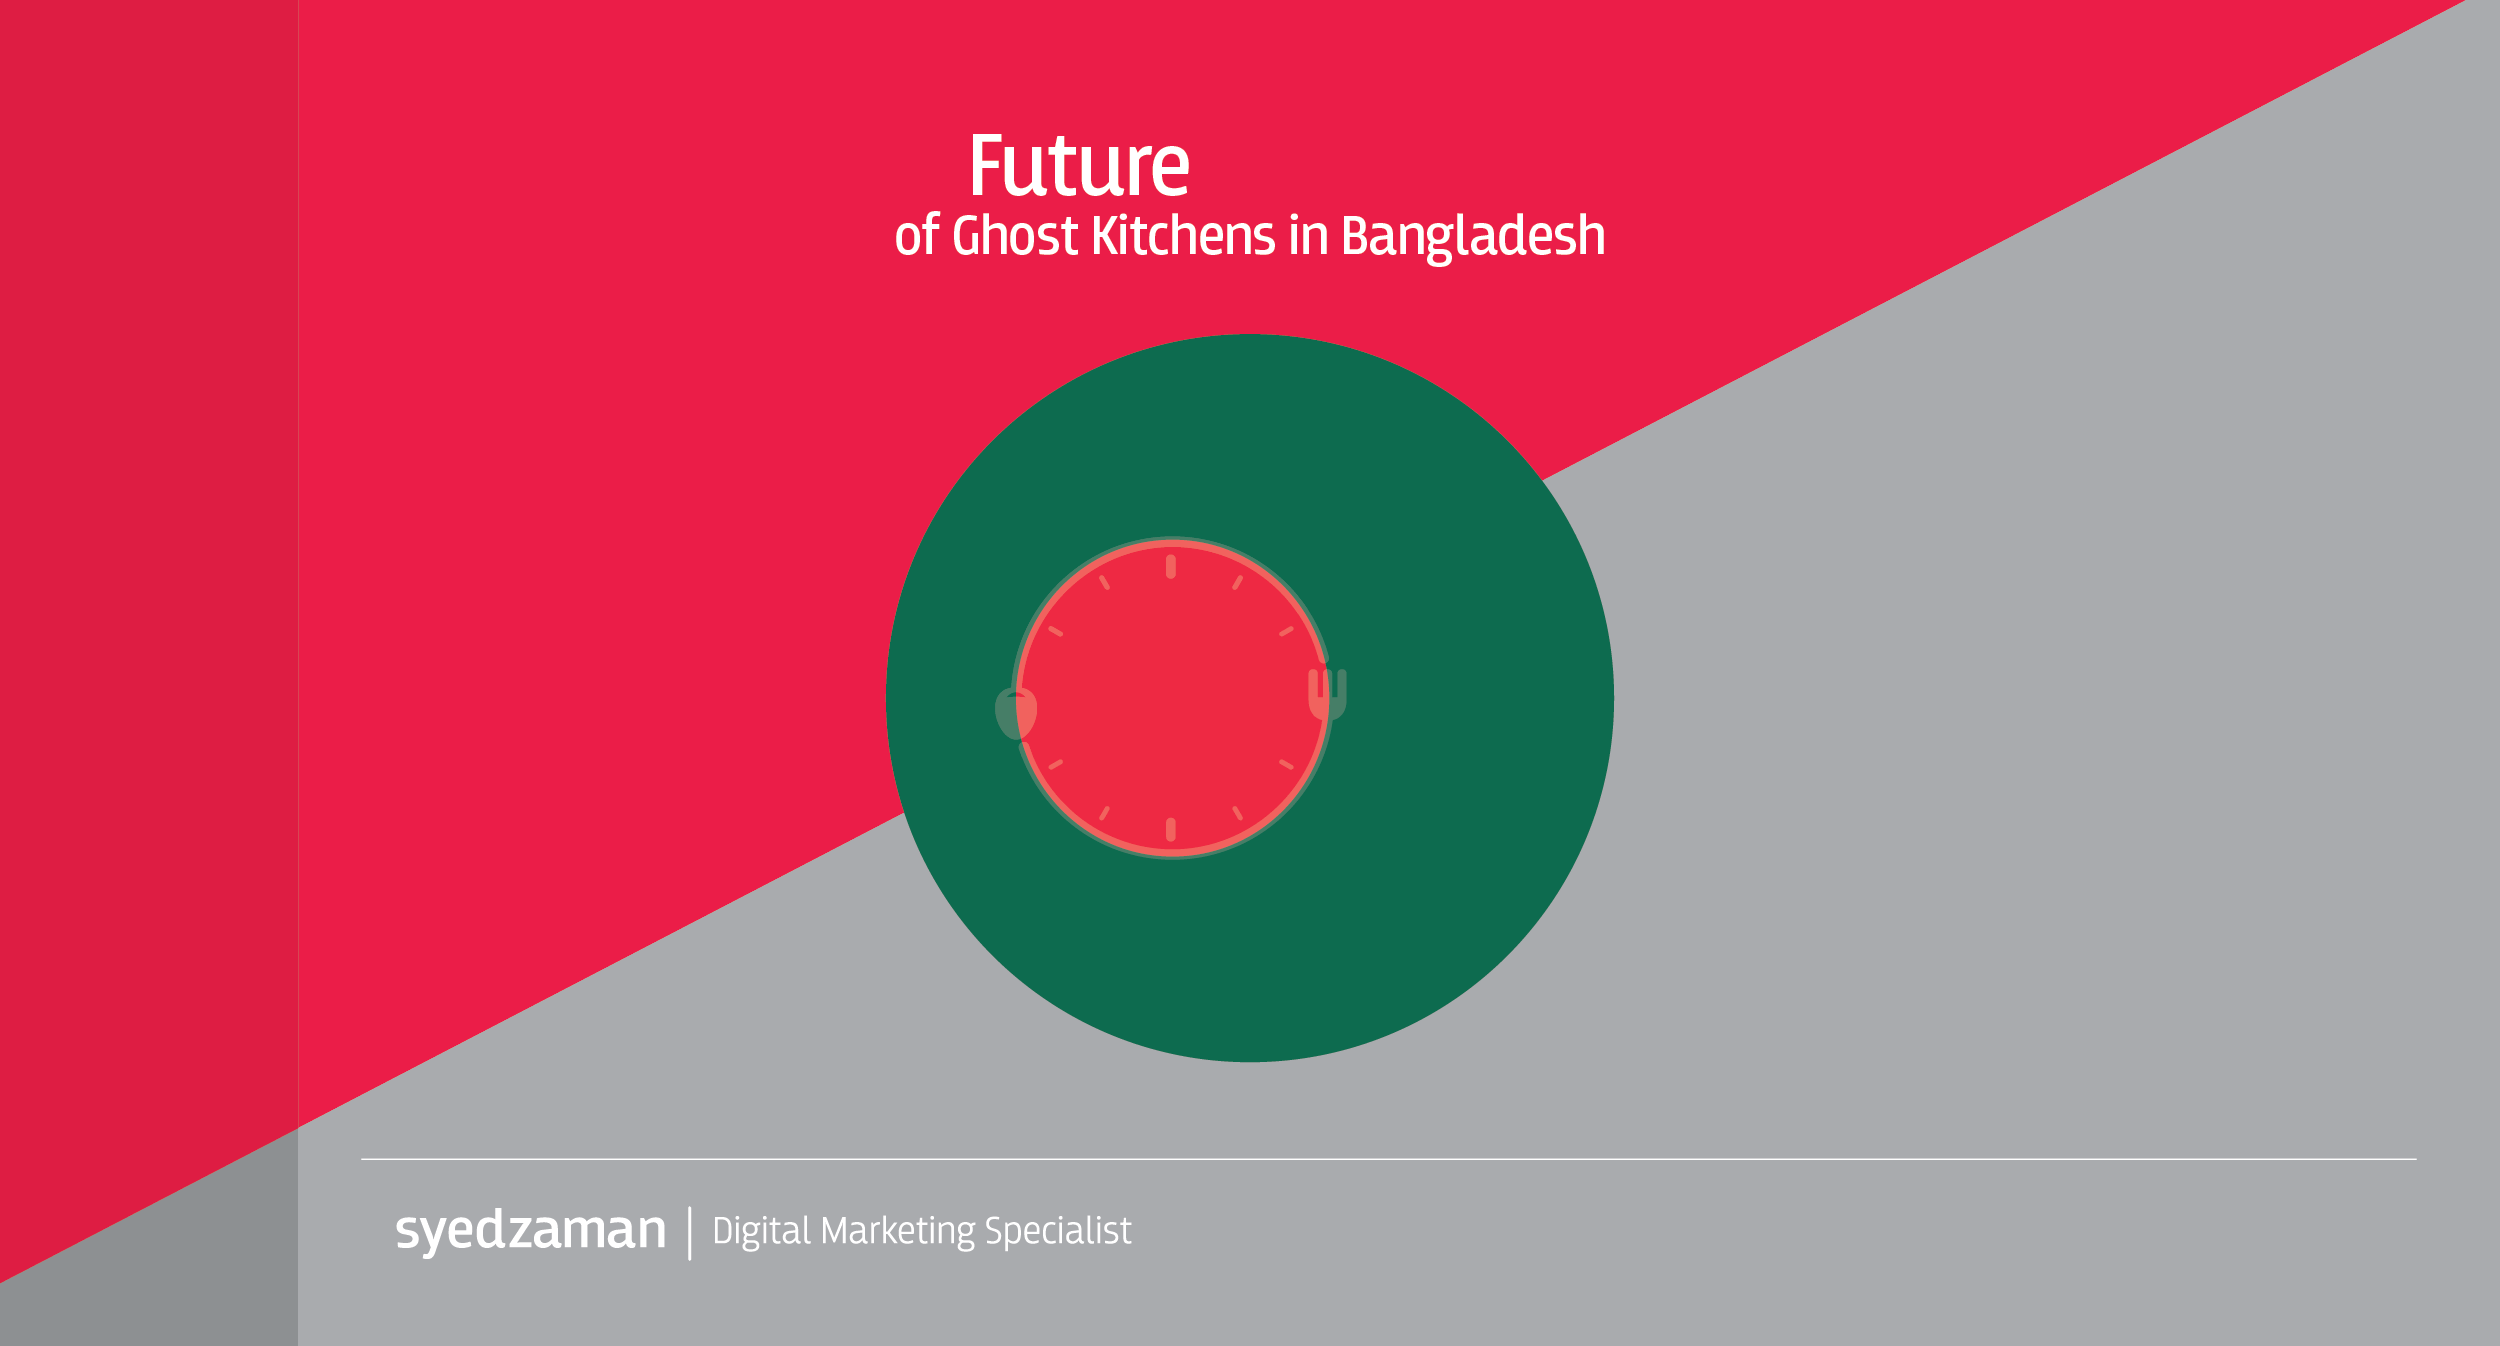 Future of Ghost Kitchens in Bangladesh